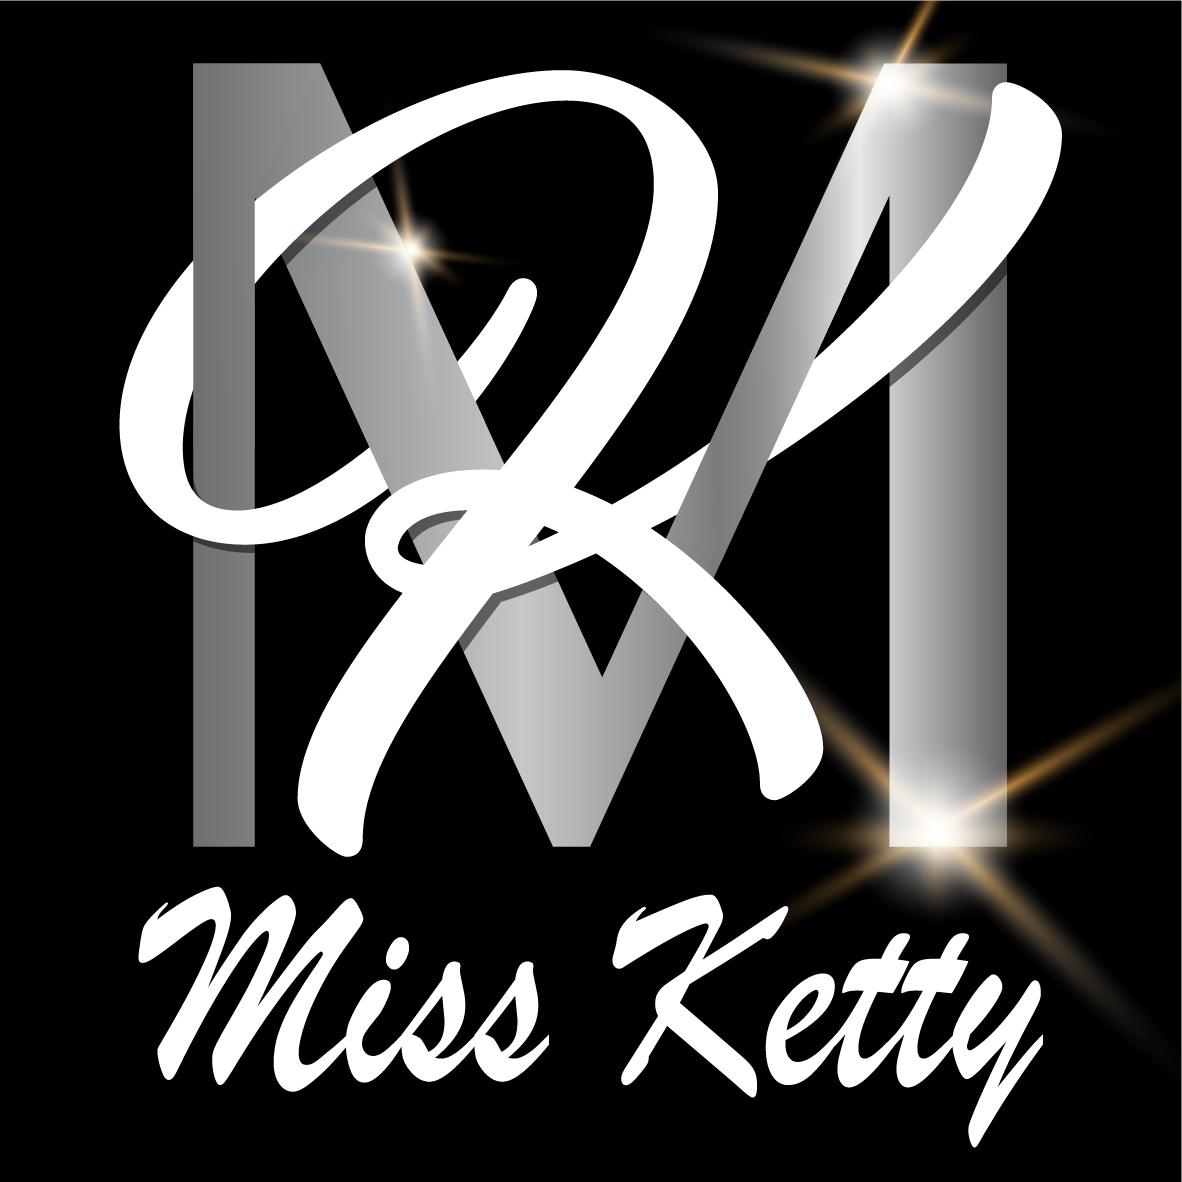 MISS KETTY aux percussions